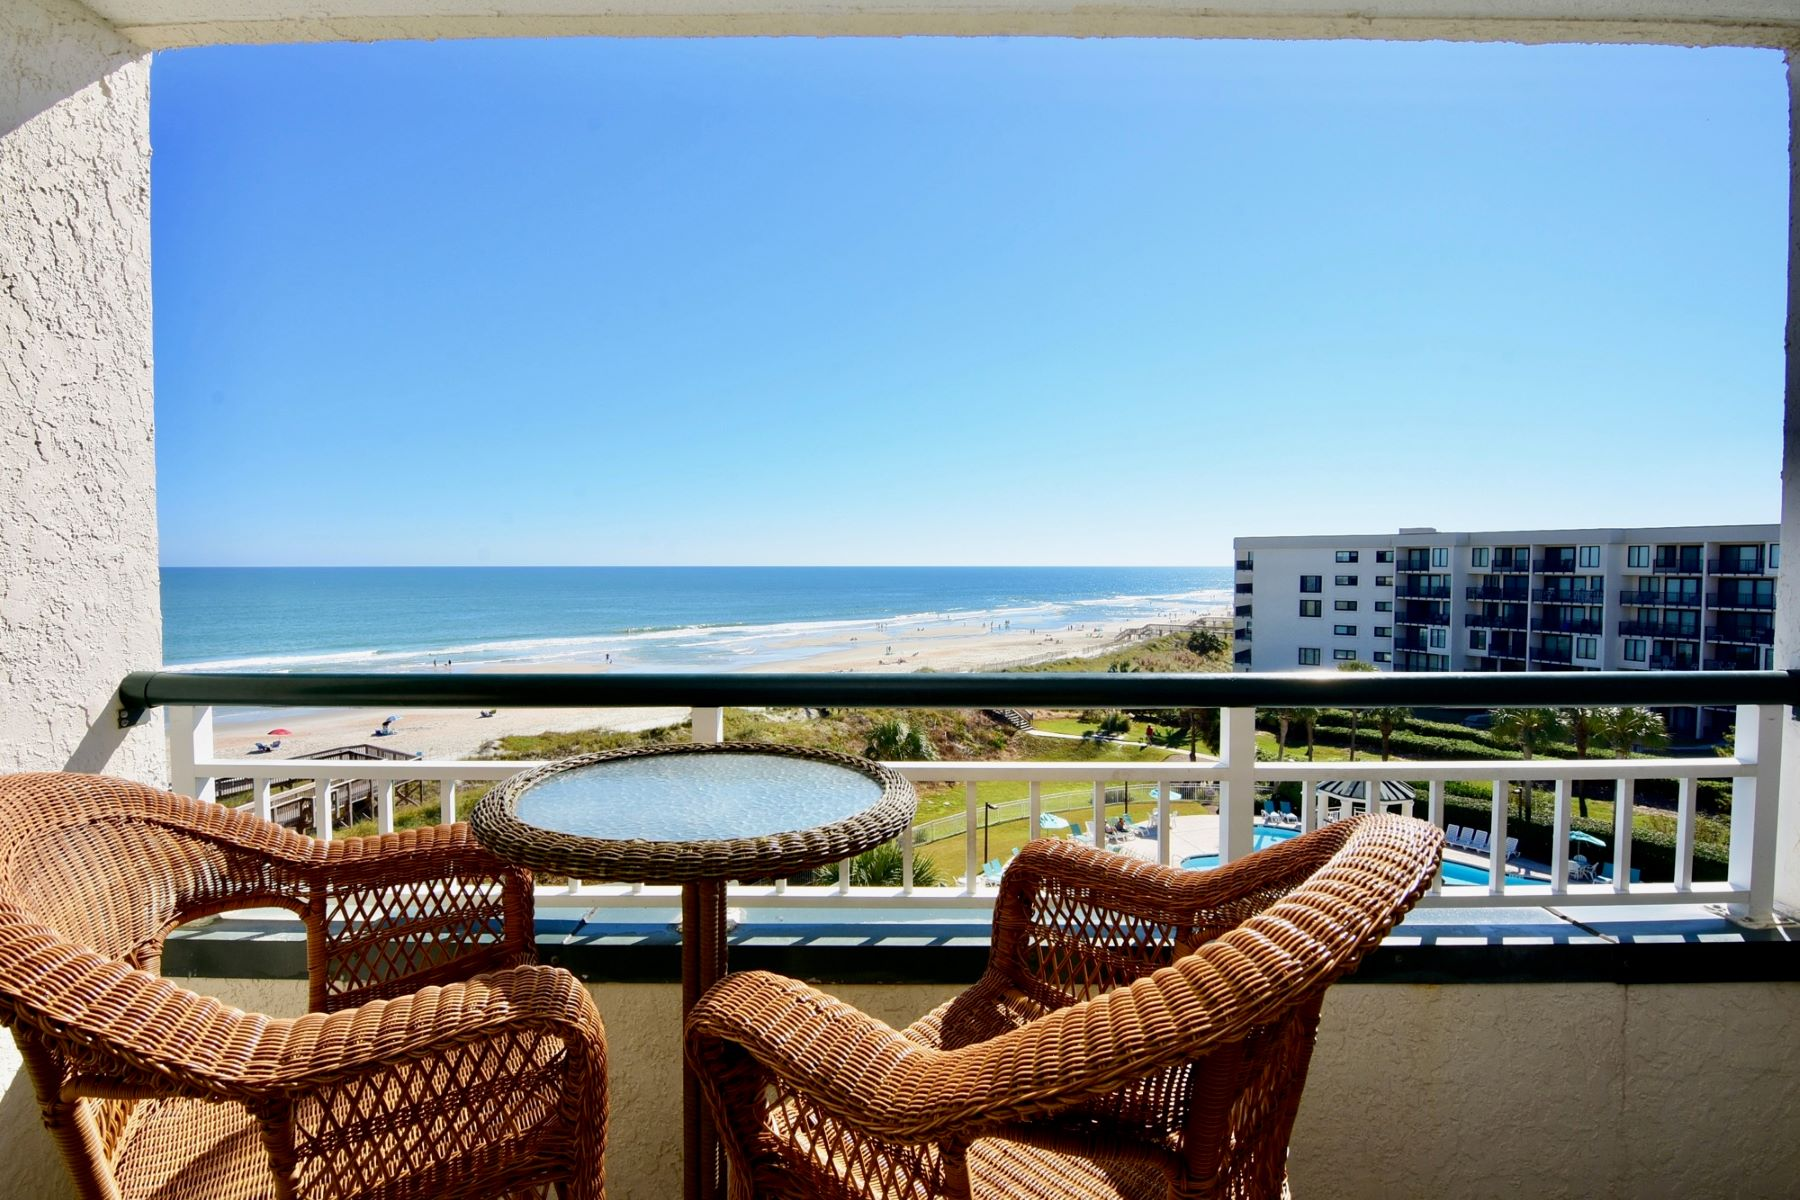 Condominium for Sale at 601 Retreat Beach Circle, 505, Pawleys Island, SC 601 Retreat Beach Circle 505 Pawleys Island, South Carolina 29585 United States